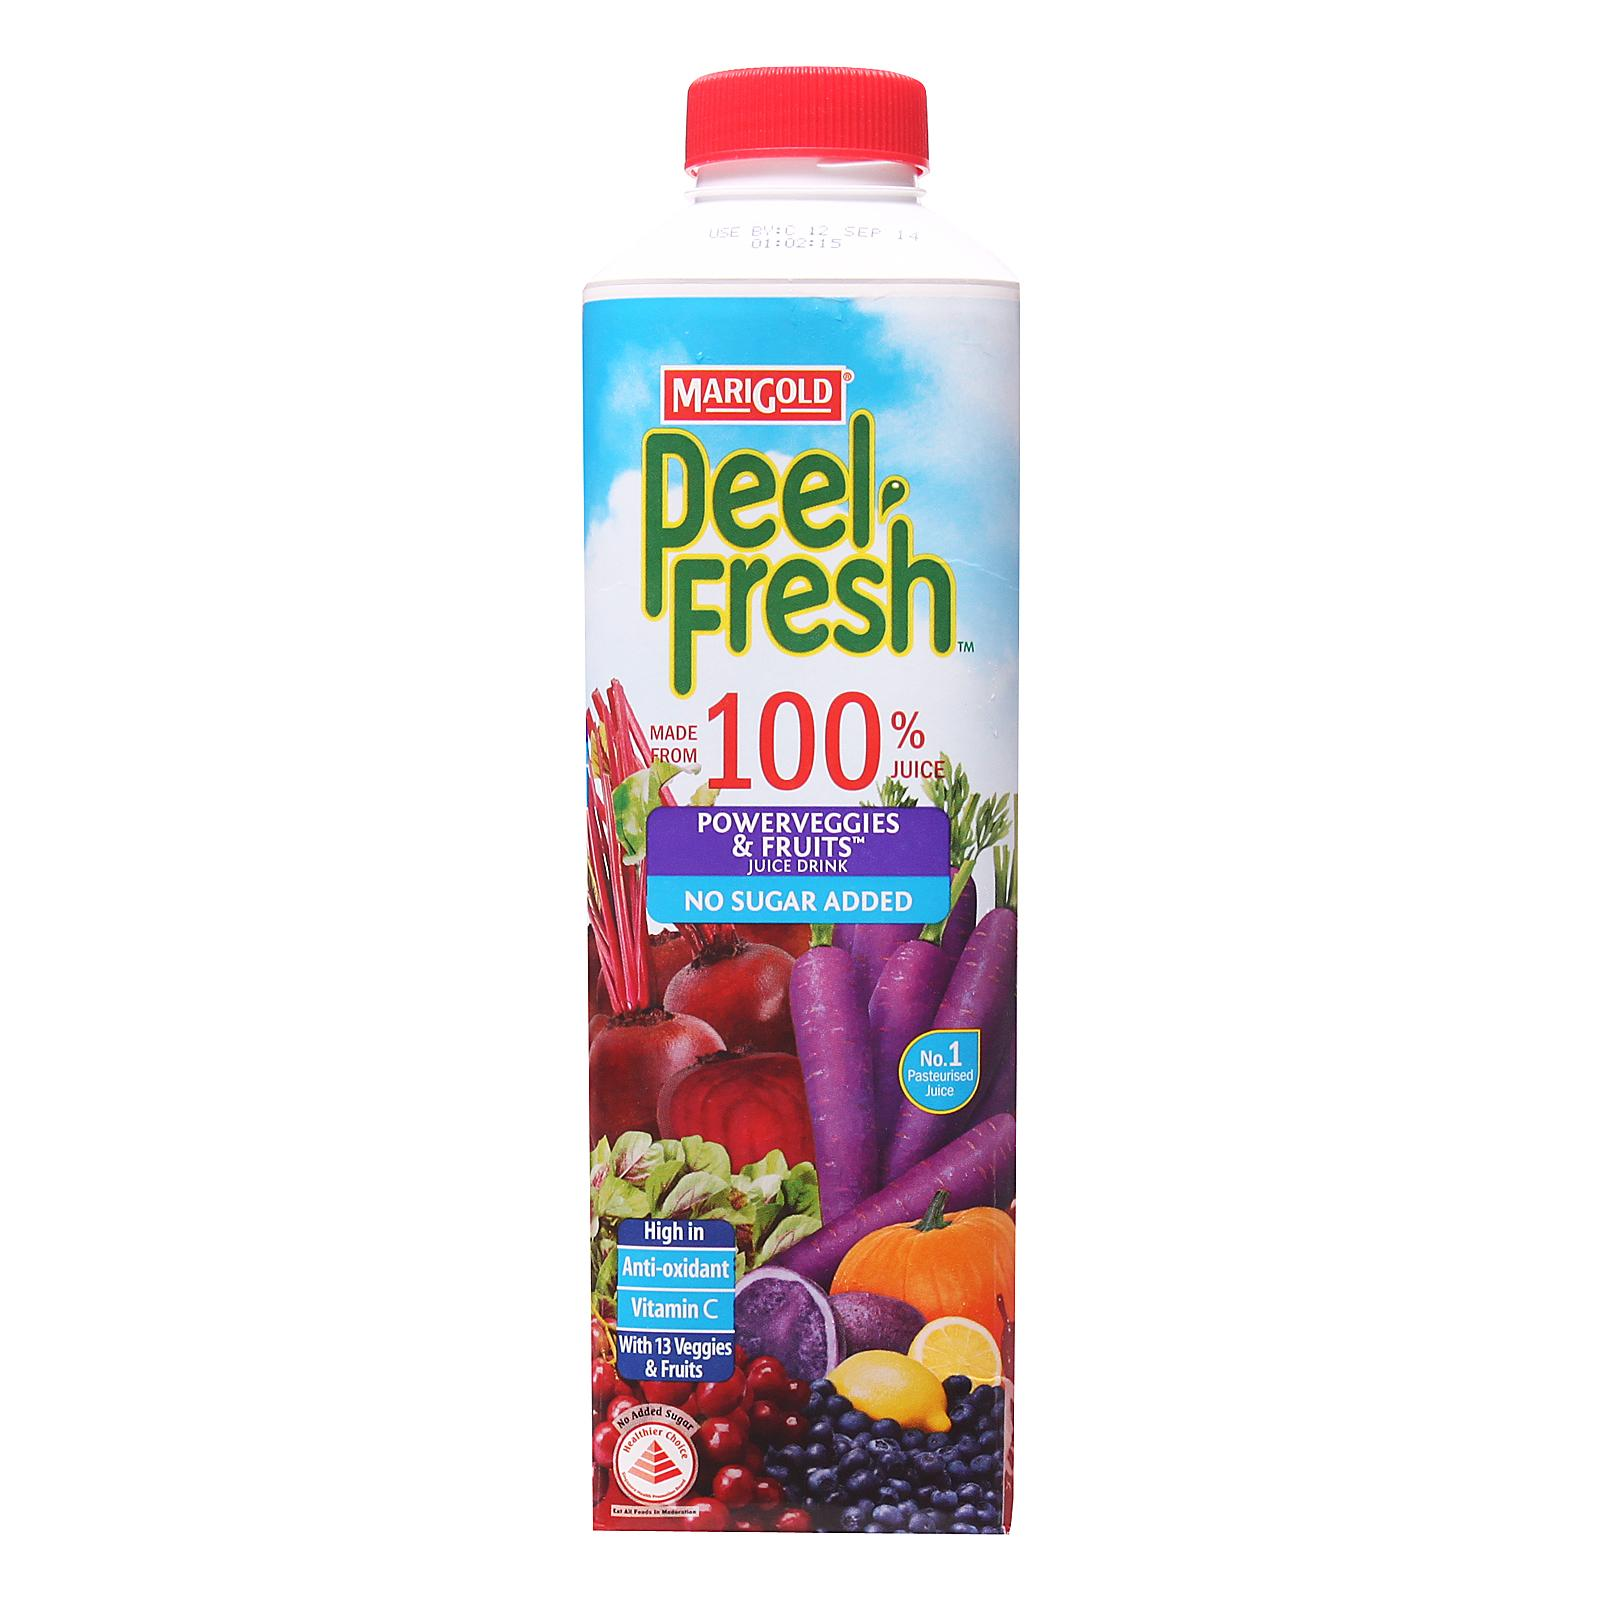 Marigold Peel Fresh No Sugar Added Juice Drink - Powerveggies And Mixed Fruits By Redmart.